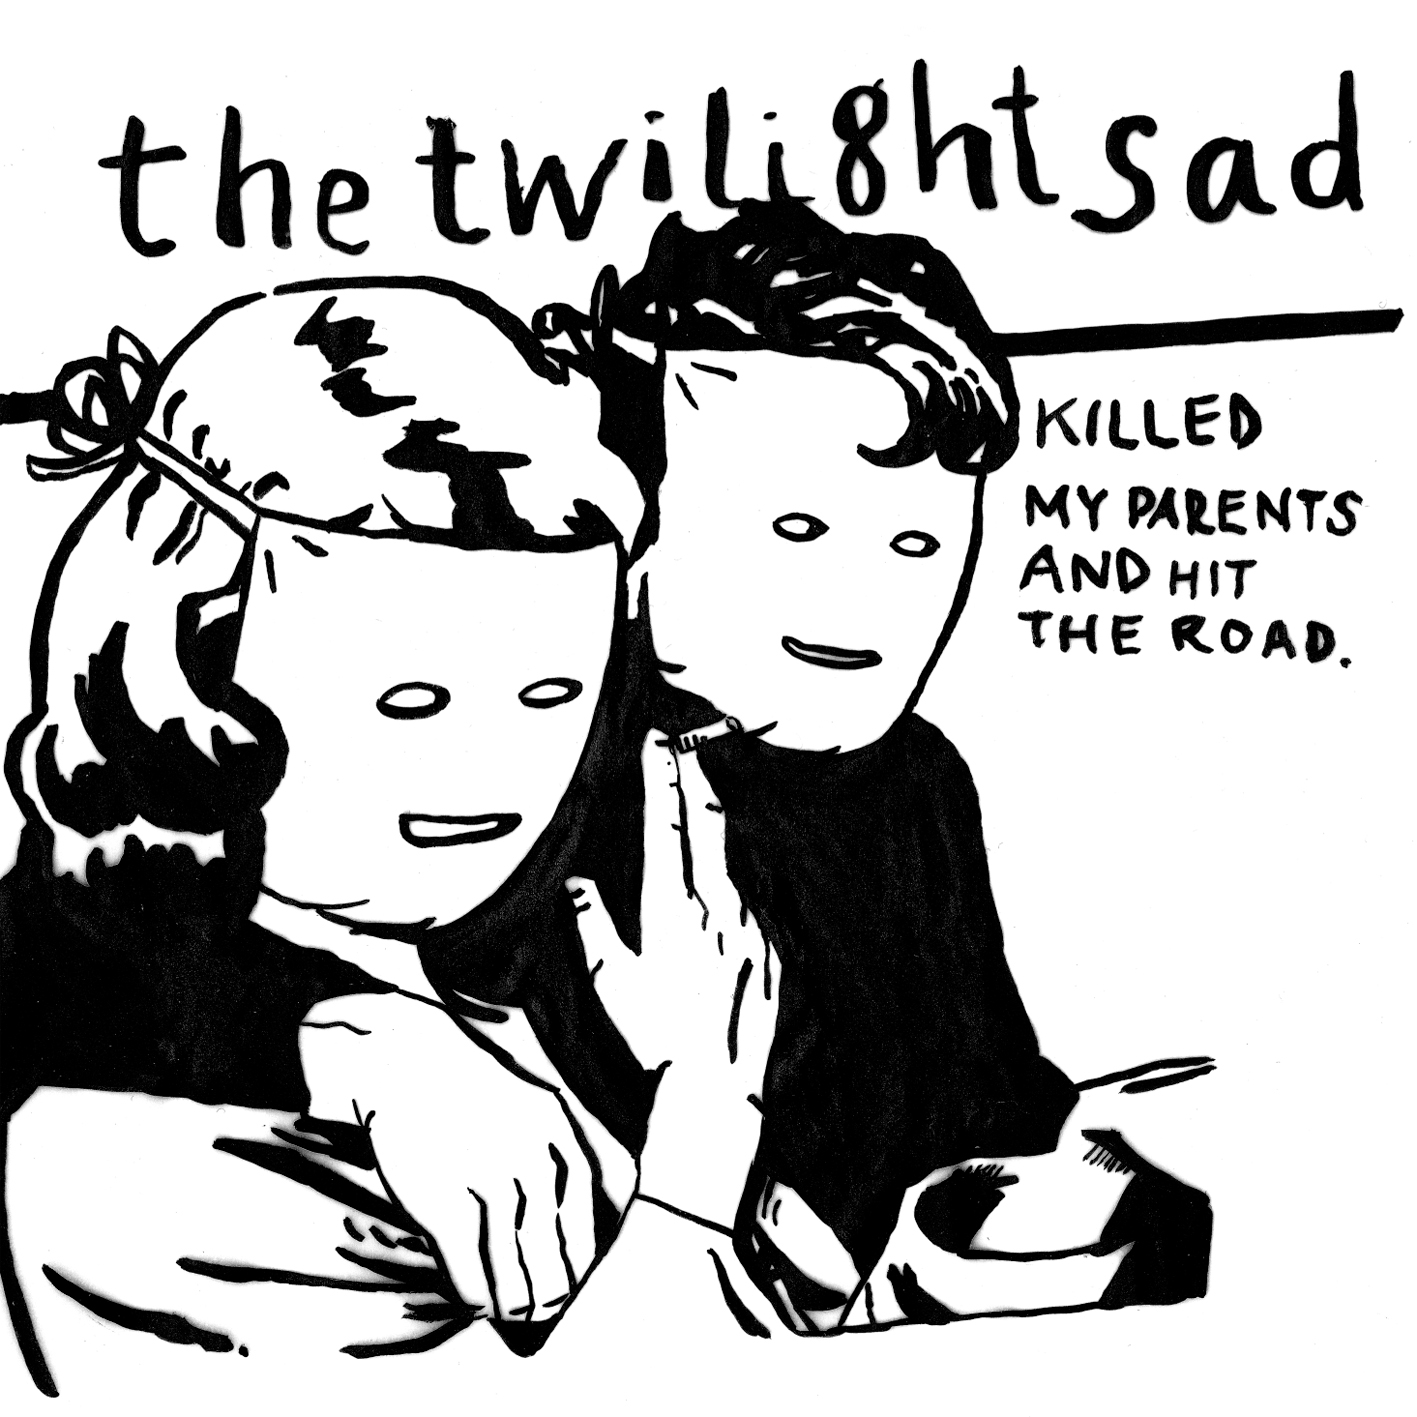 The Twilight Sad Killed My Parents and Hit The Road